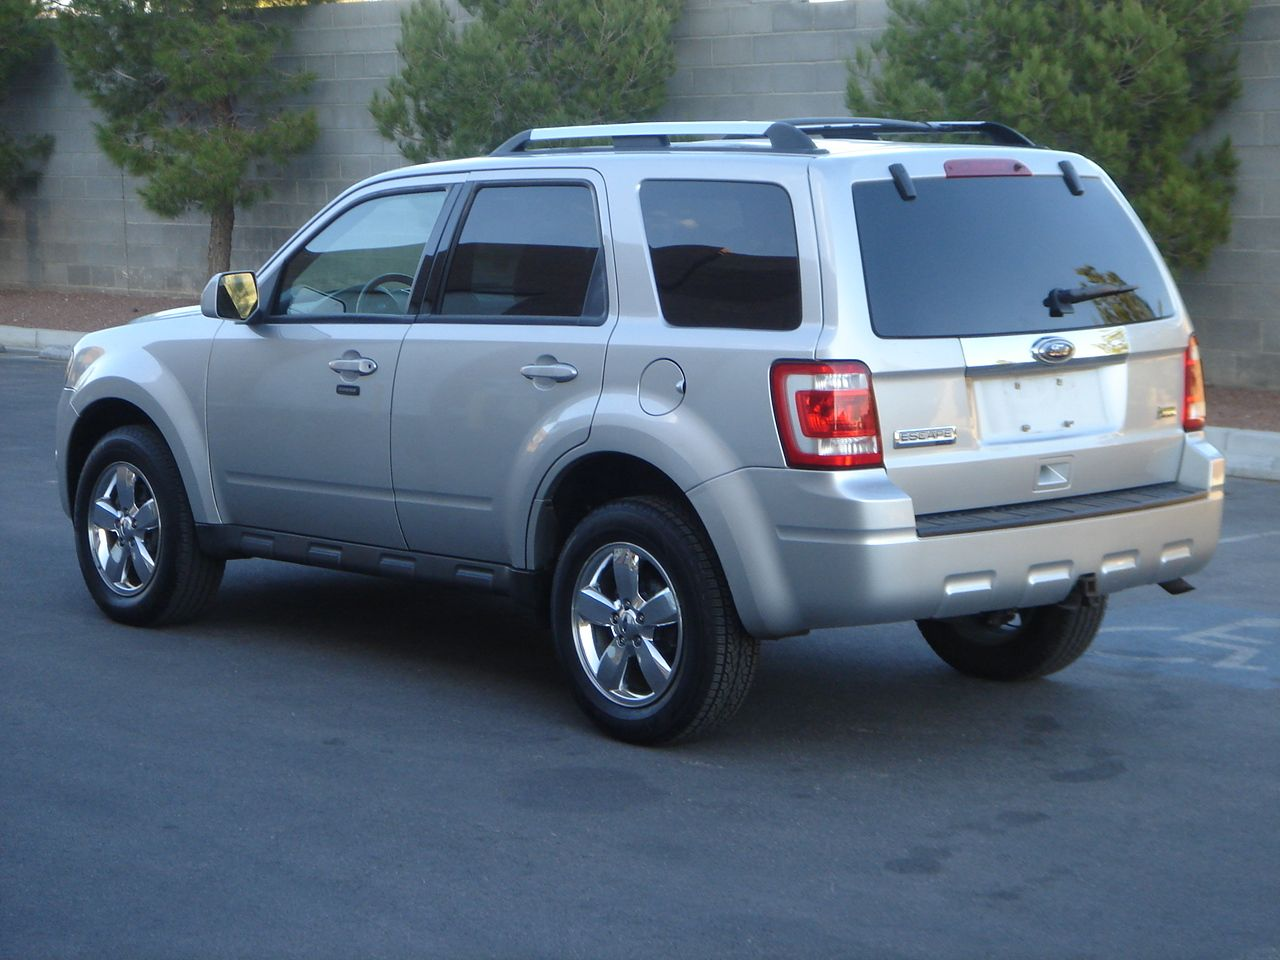 2010 Ford Escape 2010 Ford Escape Knocking Noise Escape City